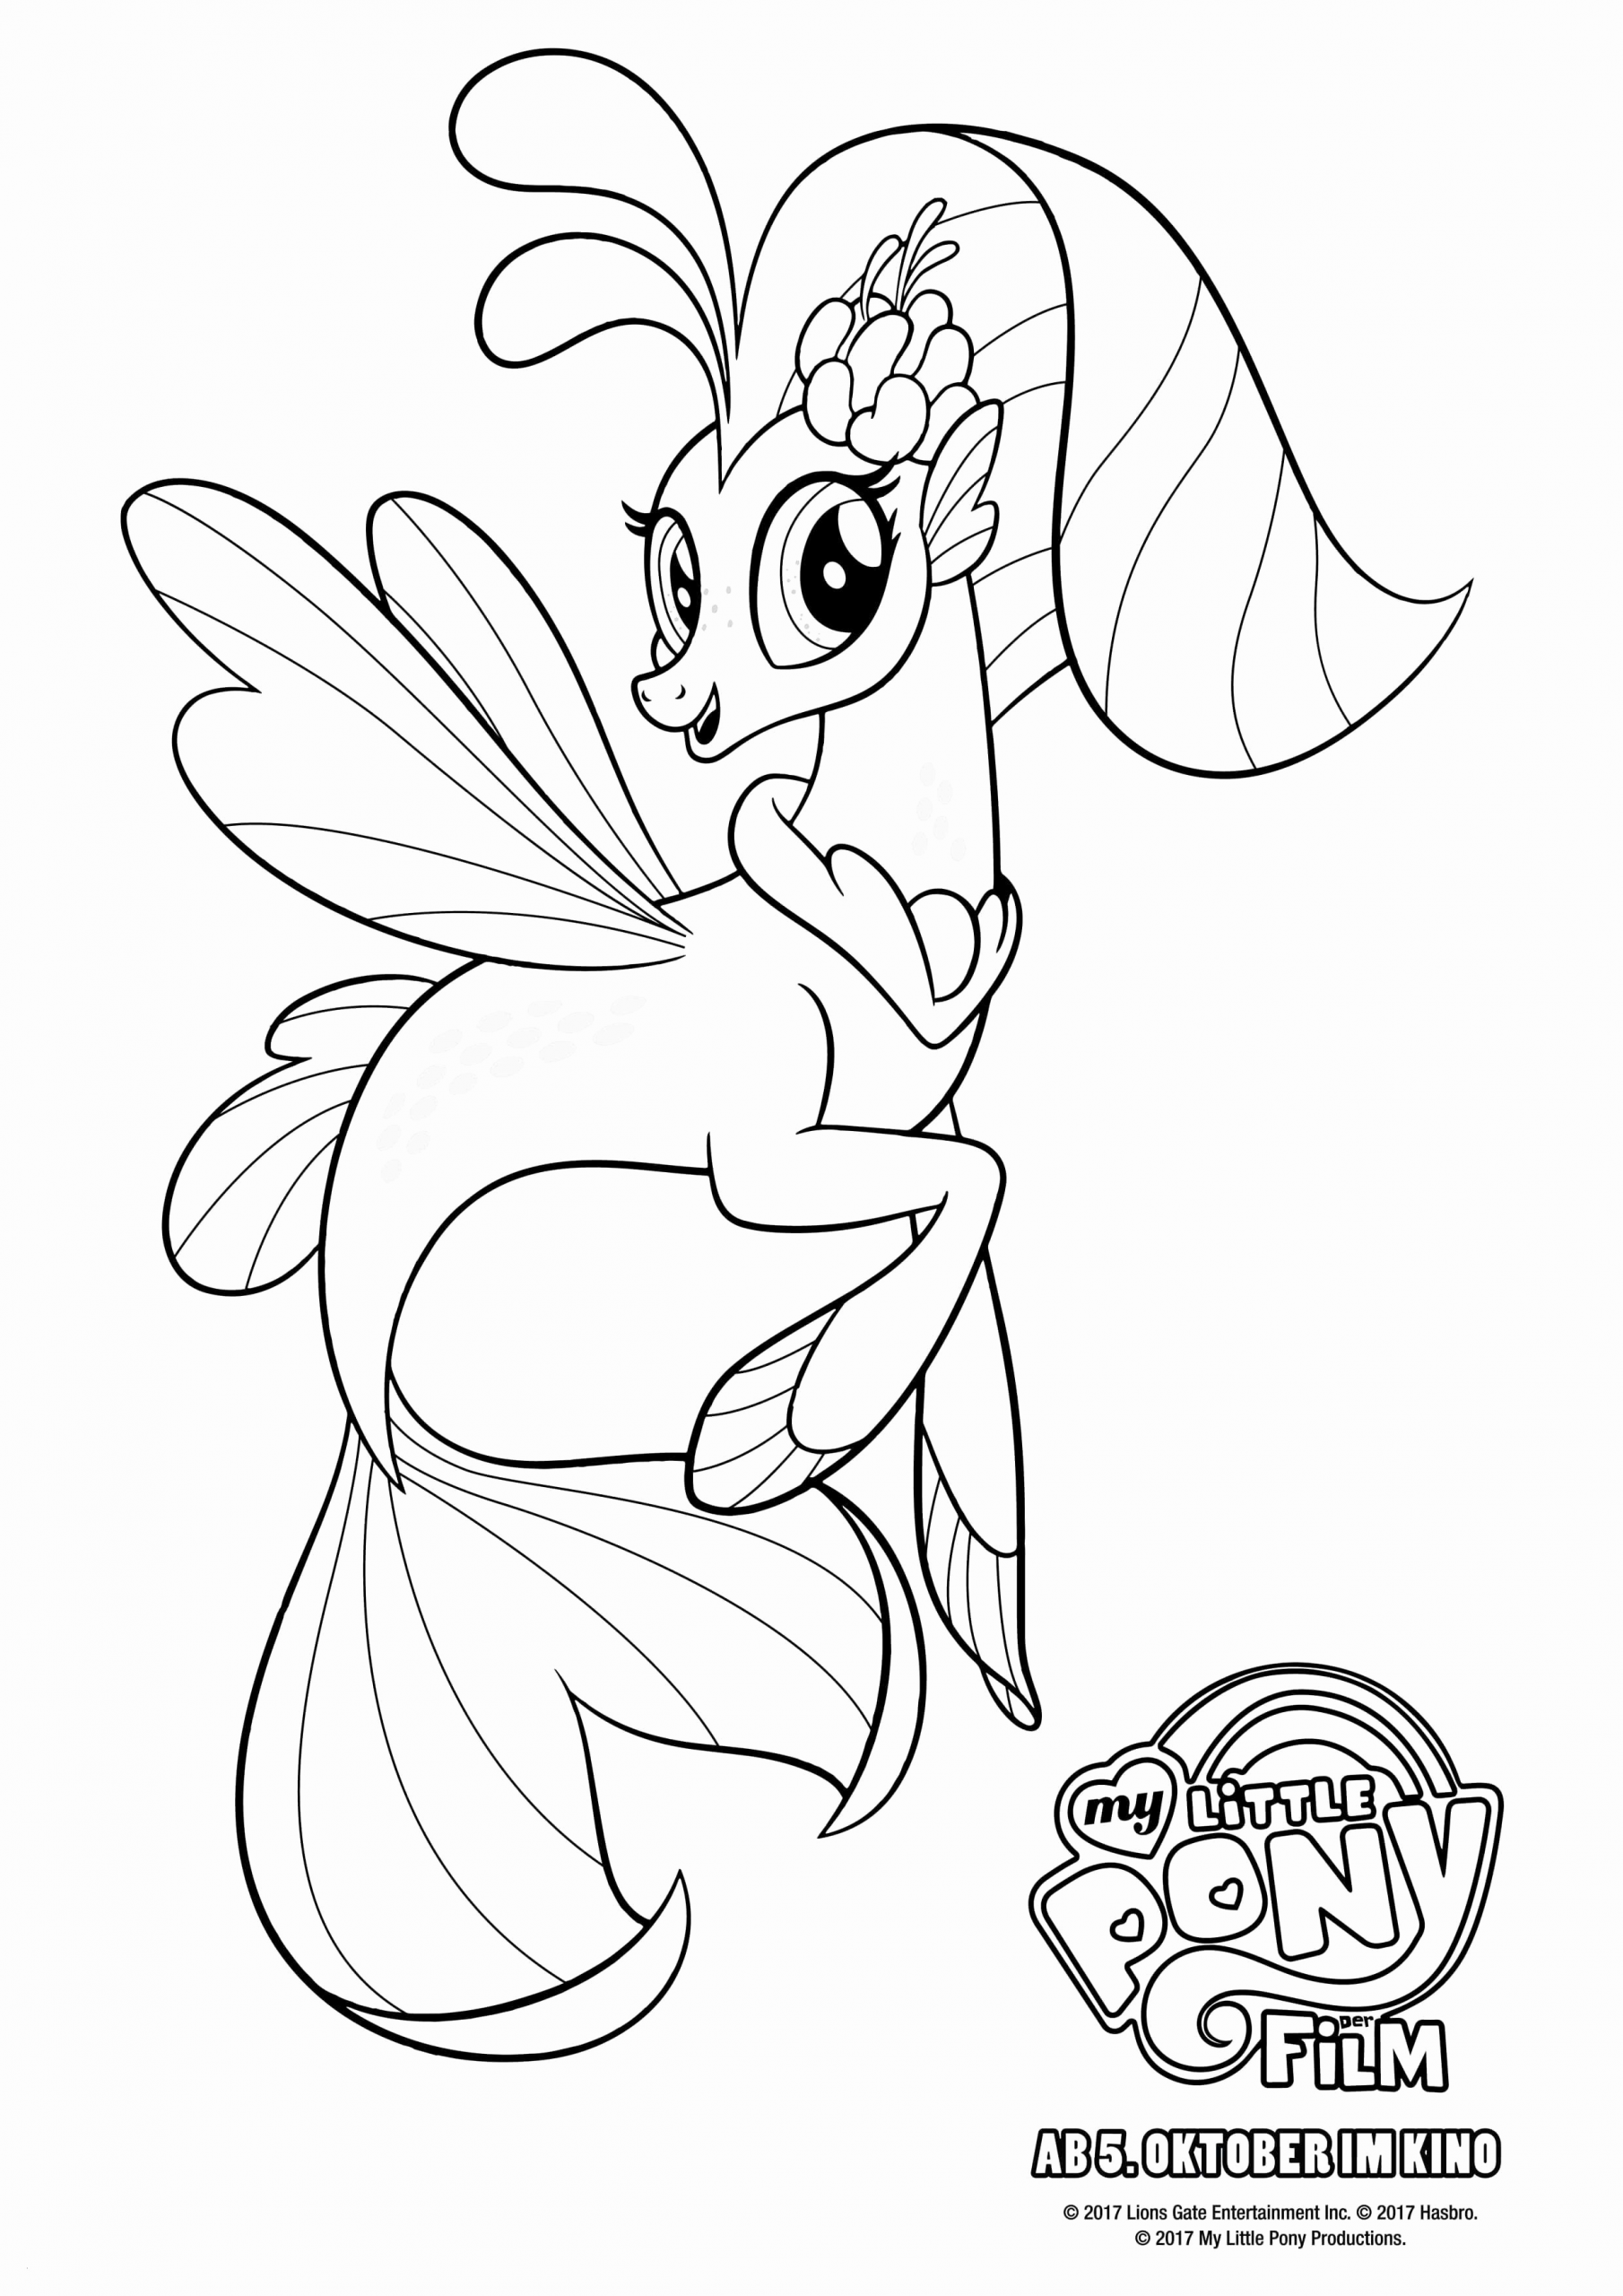 Pin On My Little Pony Coloring Pages For Kids